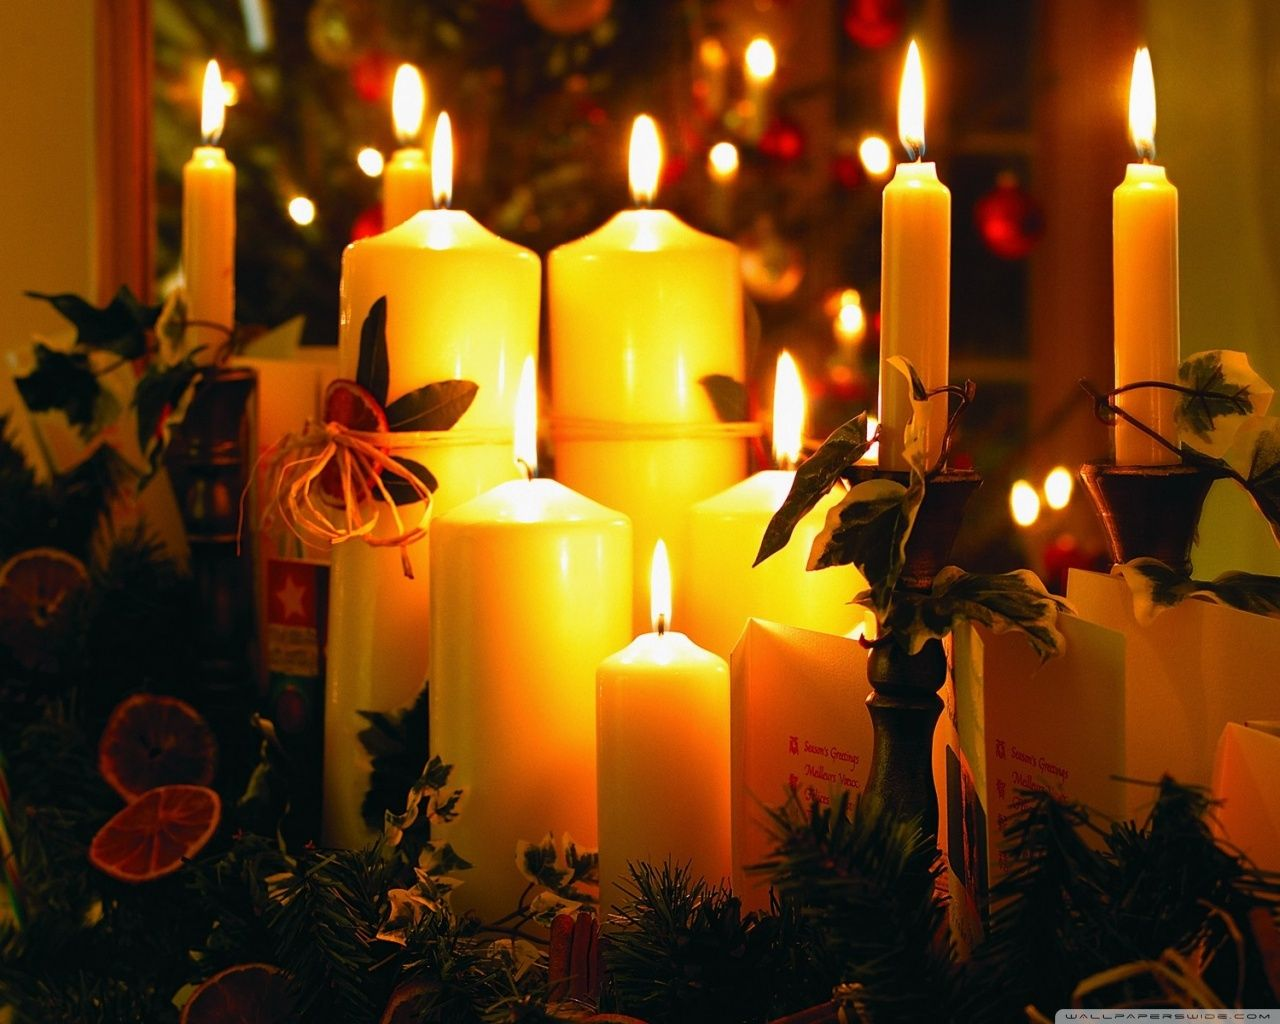 Candles for Fireplace Display Unique Beautiful Christmas Images Google Search